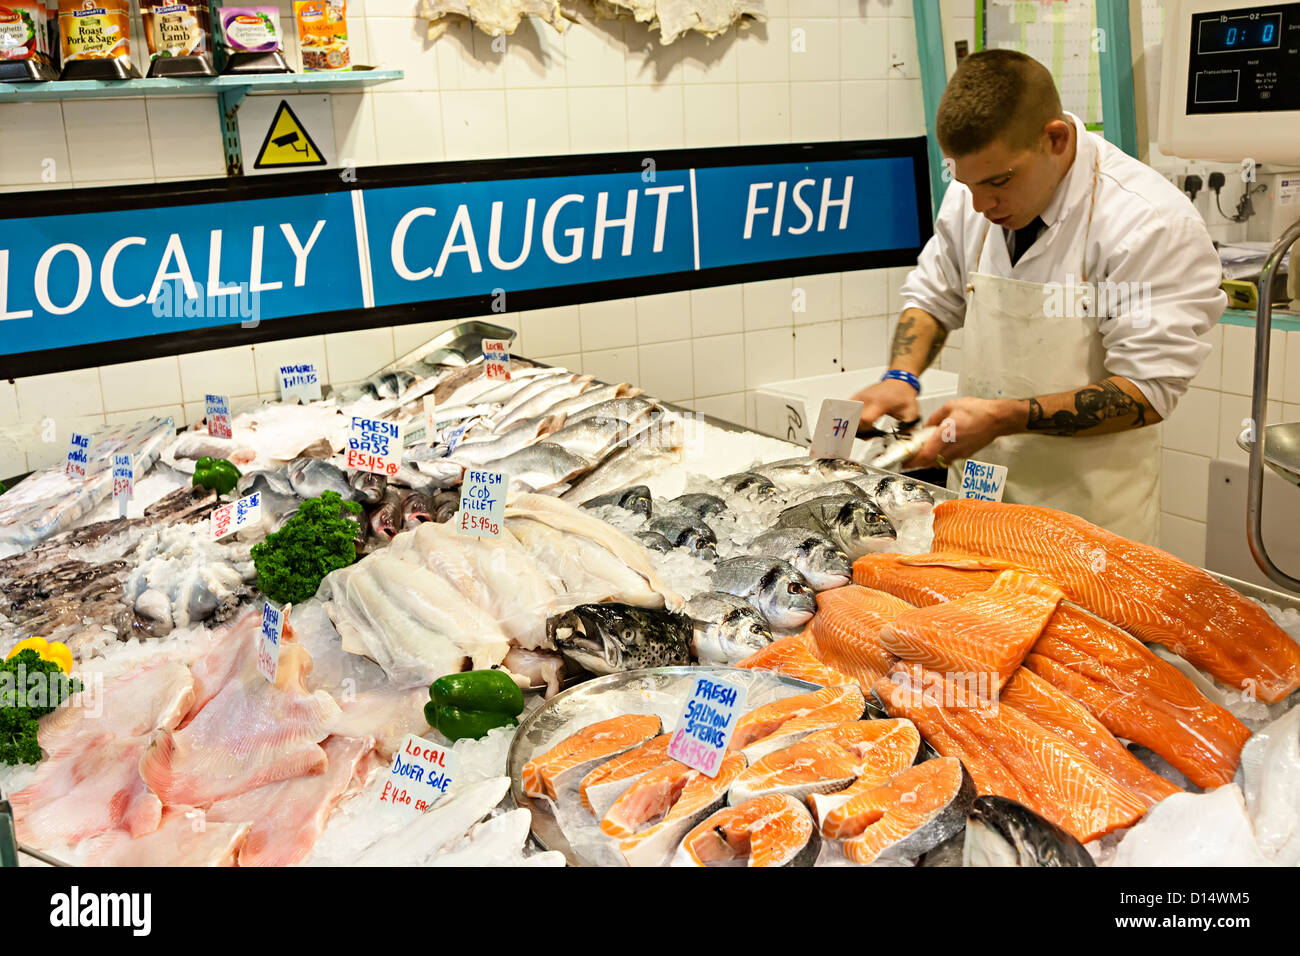 Locally caught fish on sale on fishmongers stall, indoor market, St Helier, Jersey, Channel island, UK - Stock Image